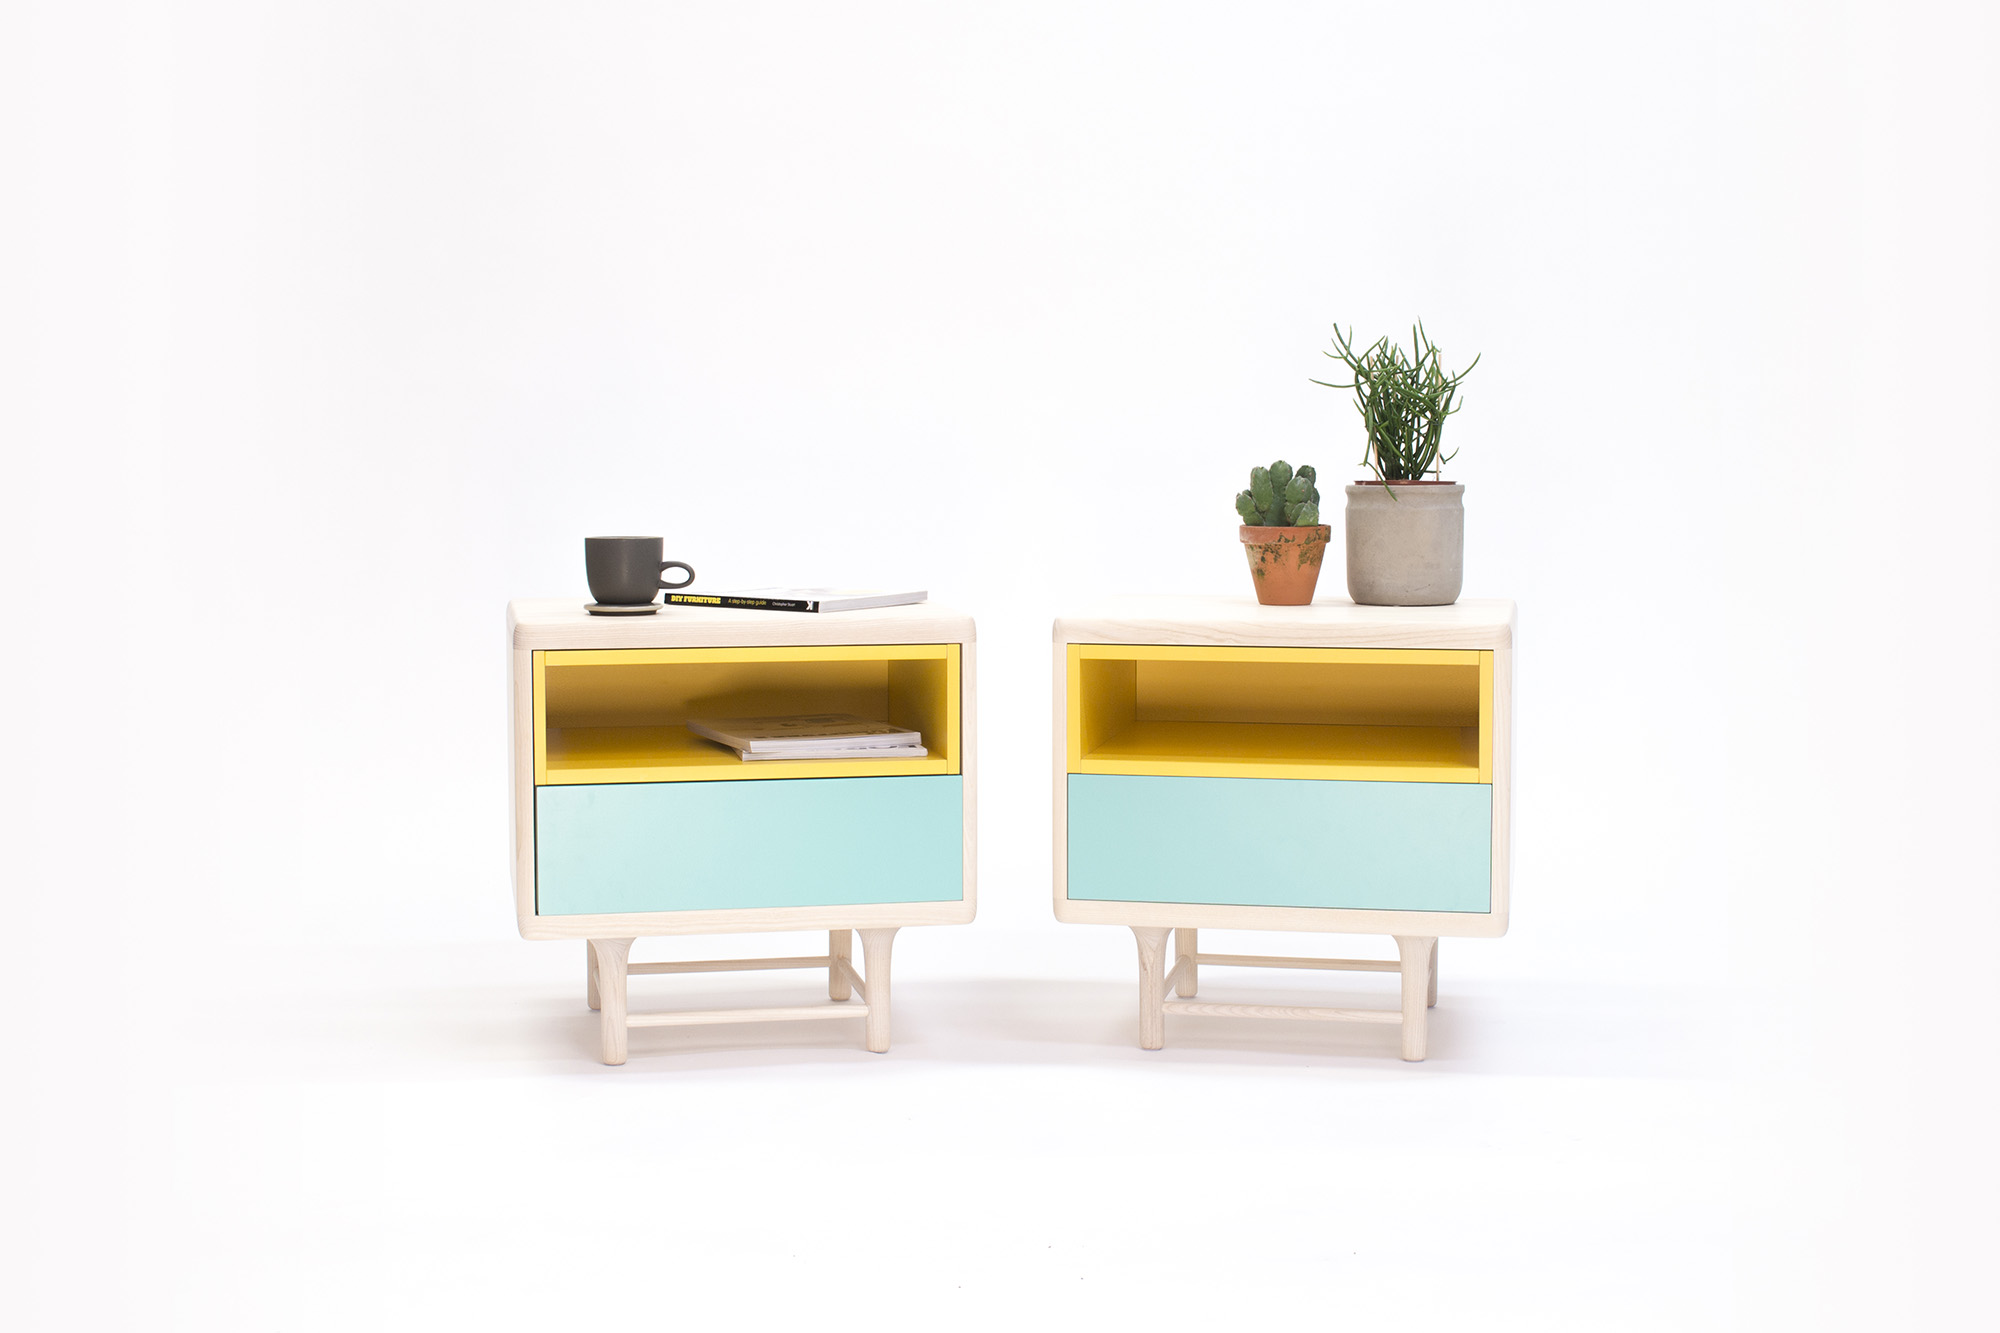 Minimal scandinavian furniture by designer carlos jim nez for Furniture design